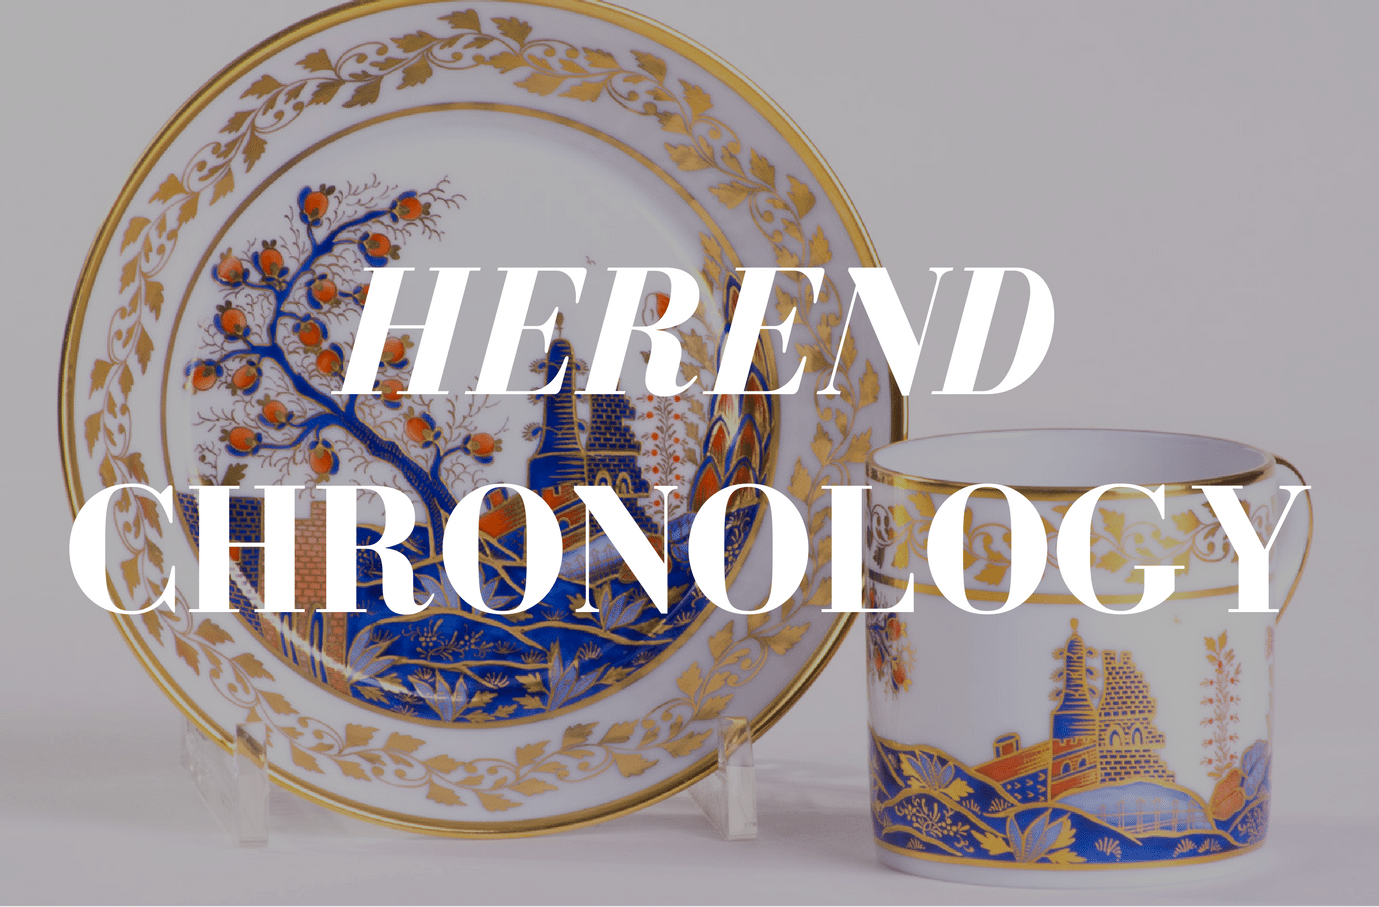 herend-chronology